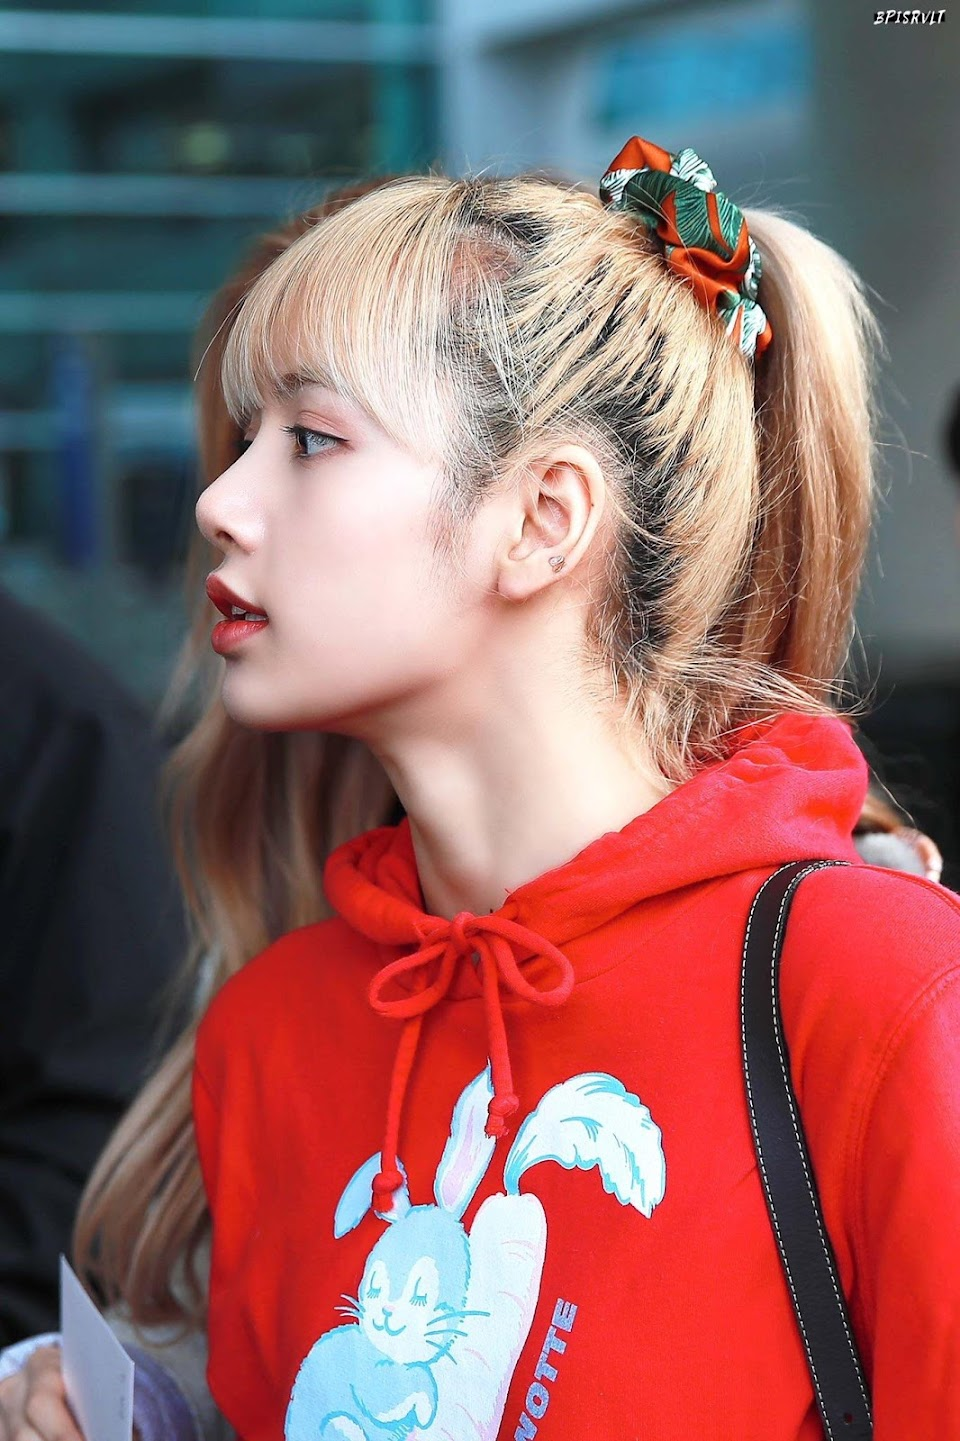 lisa profile 6